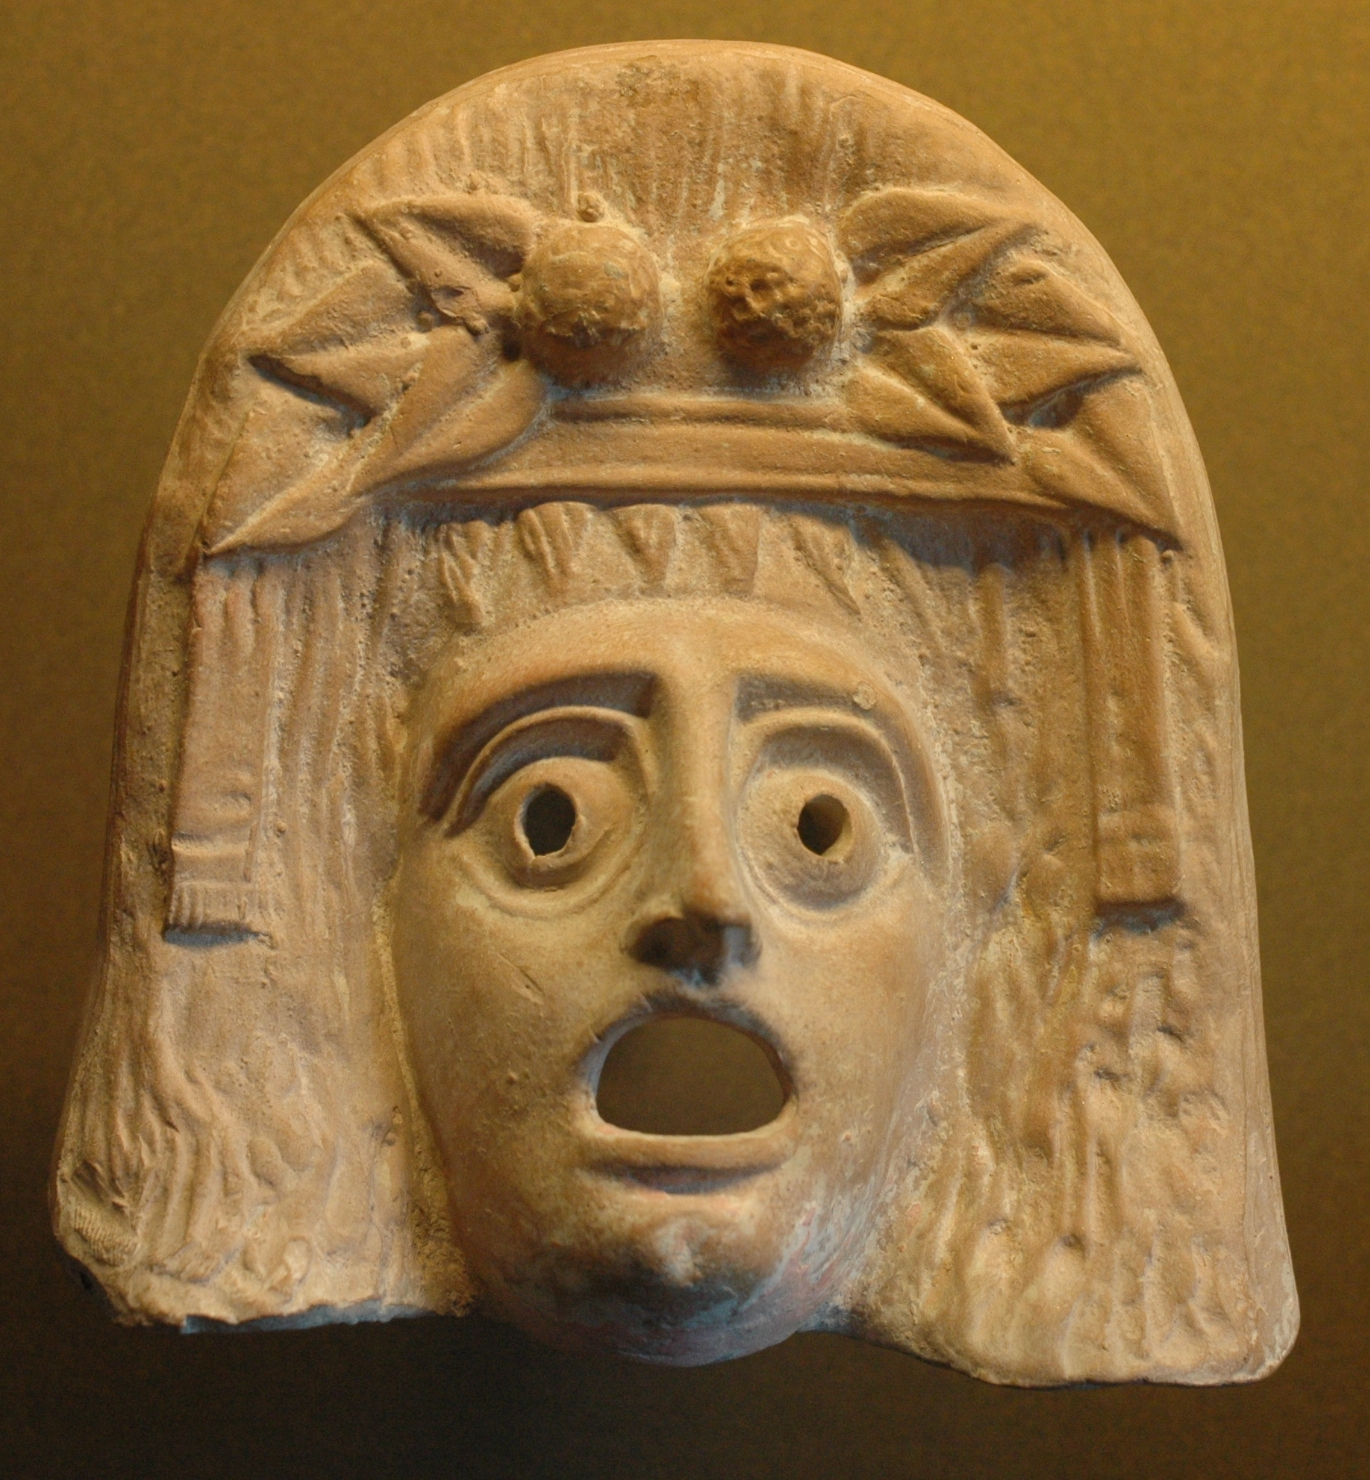 http://upload.wikimedia.org/wikipedia/commons/4/44/Dionysos_mask_Louvre_Myr347.jpg